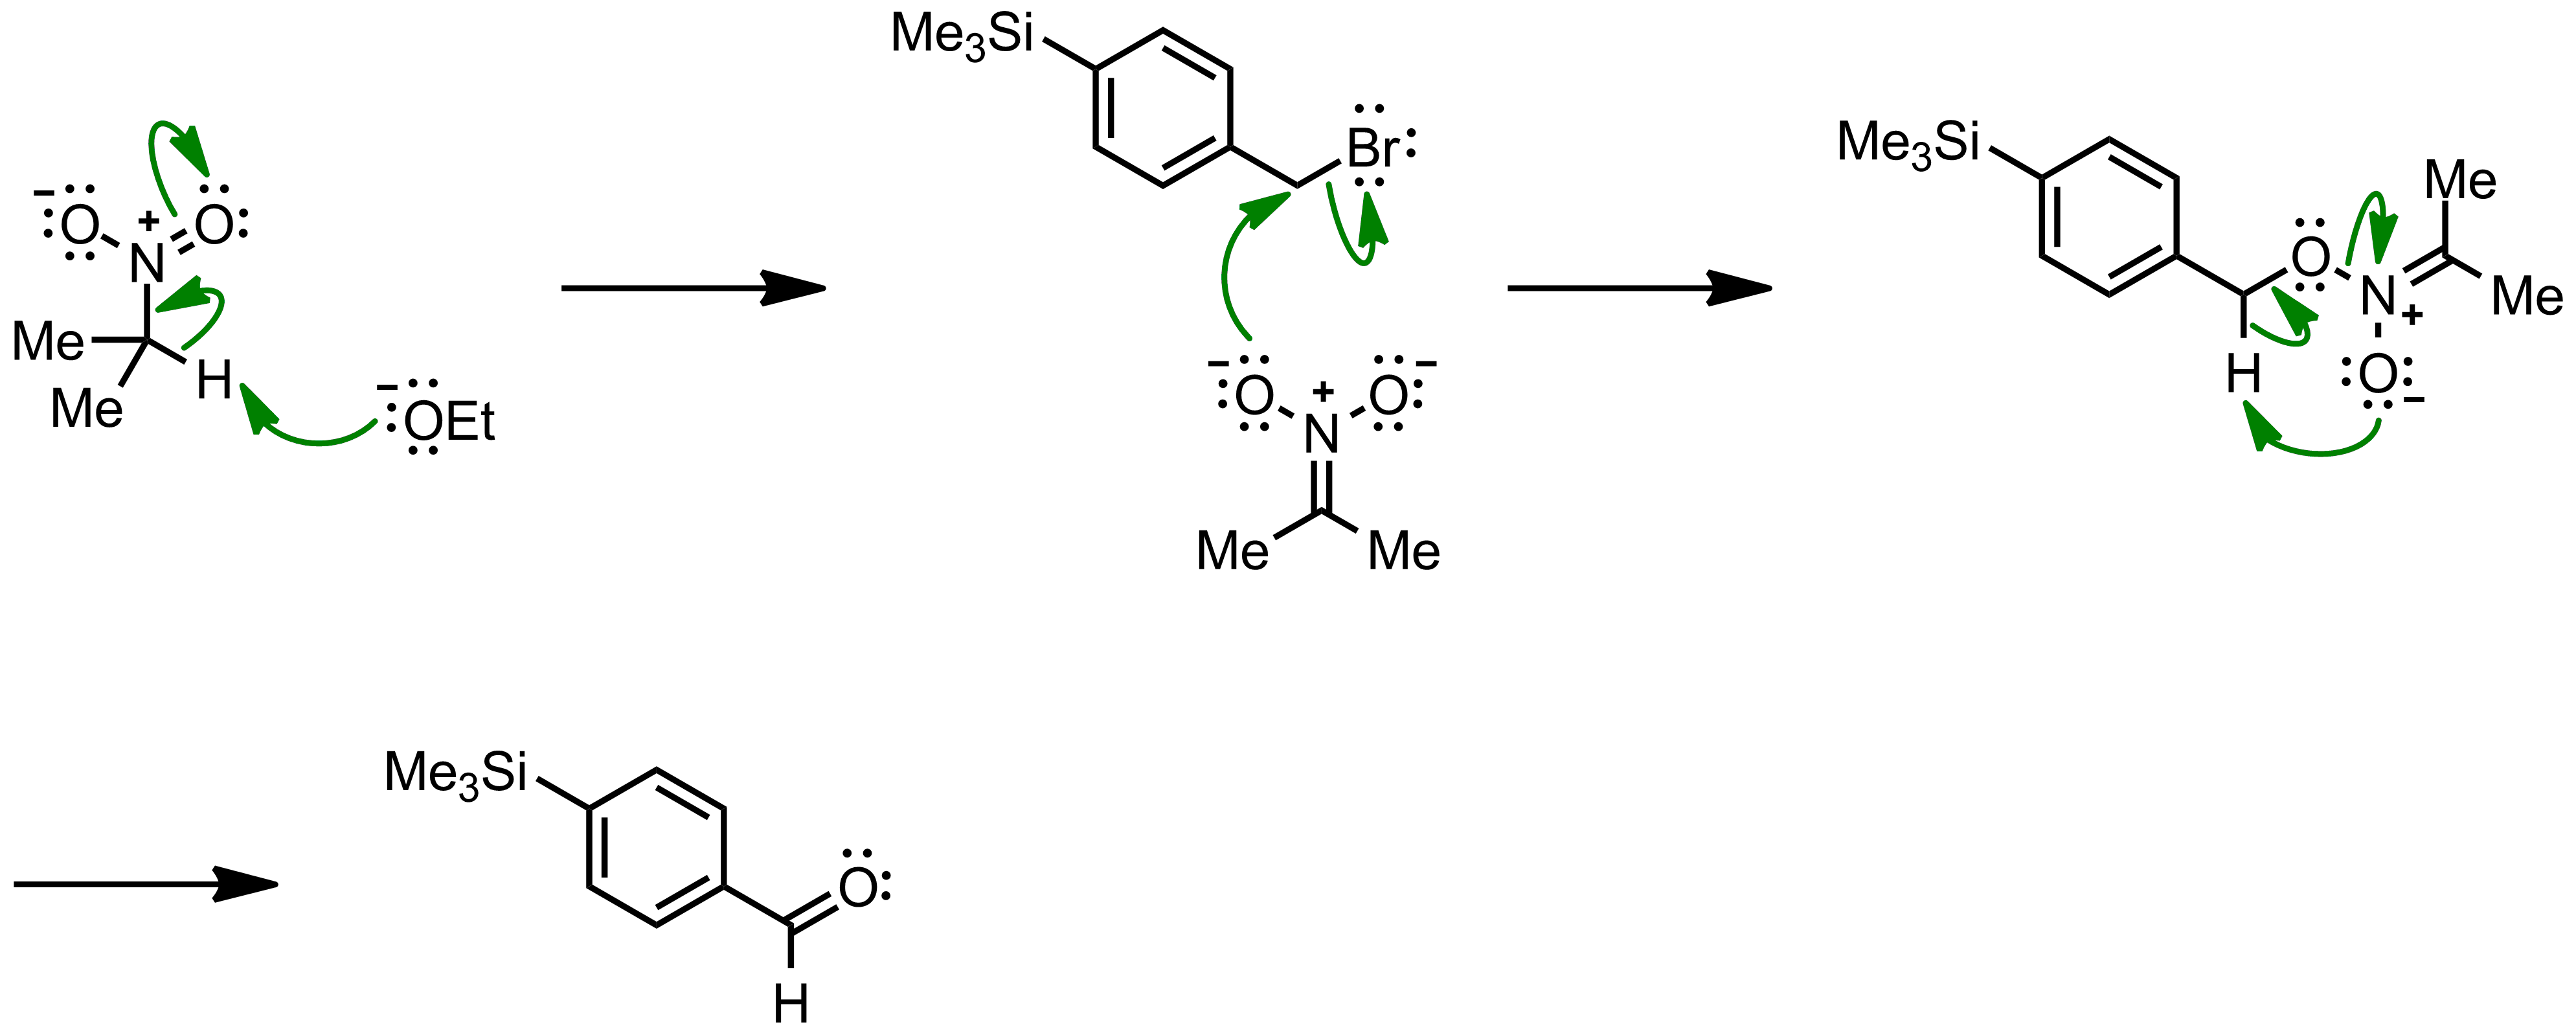 Mechanism of the Hass-Bender Oxidation